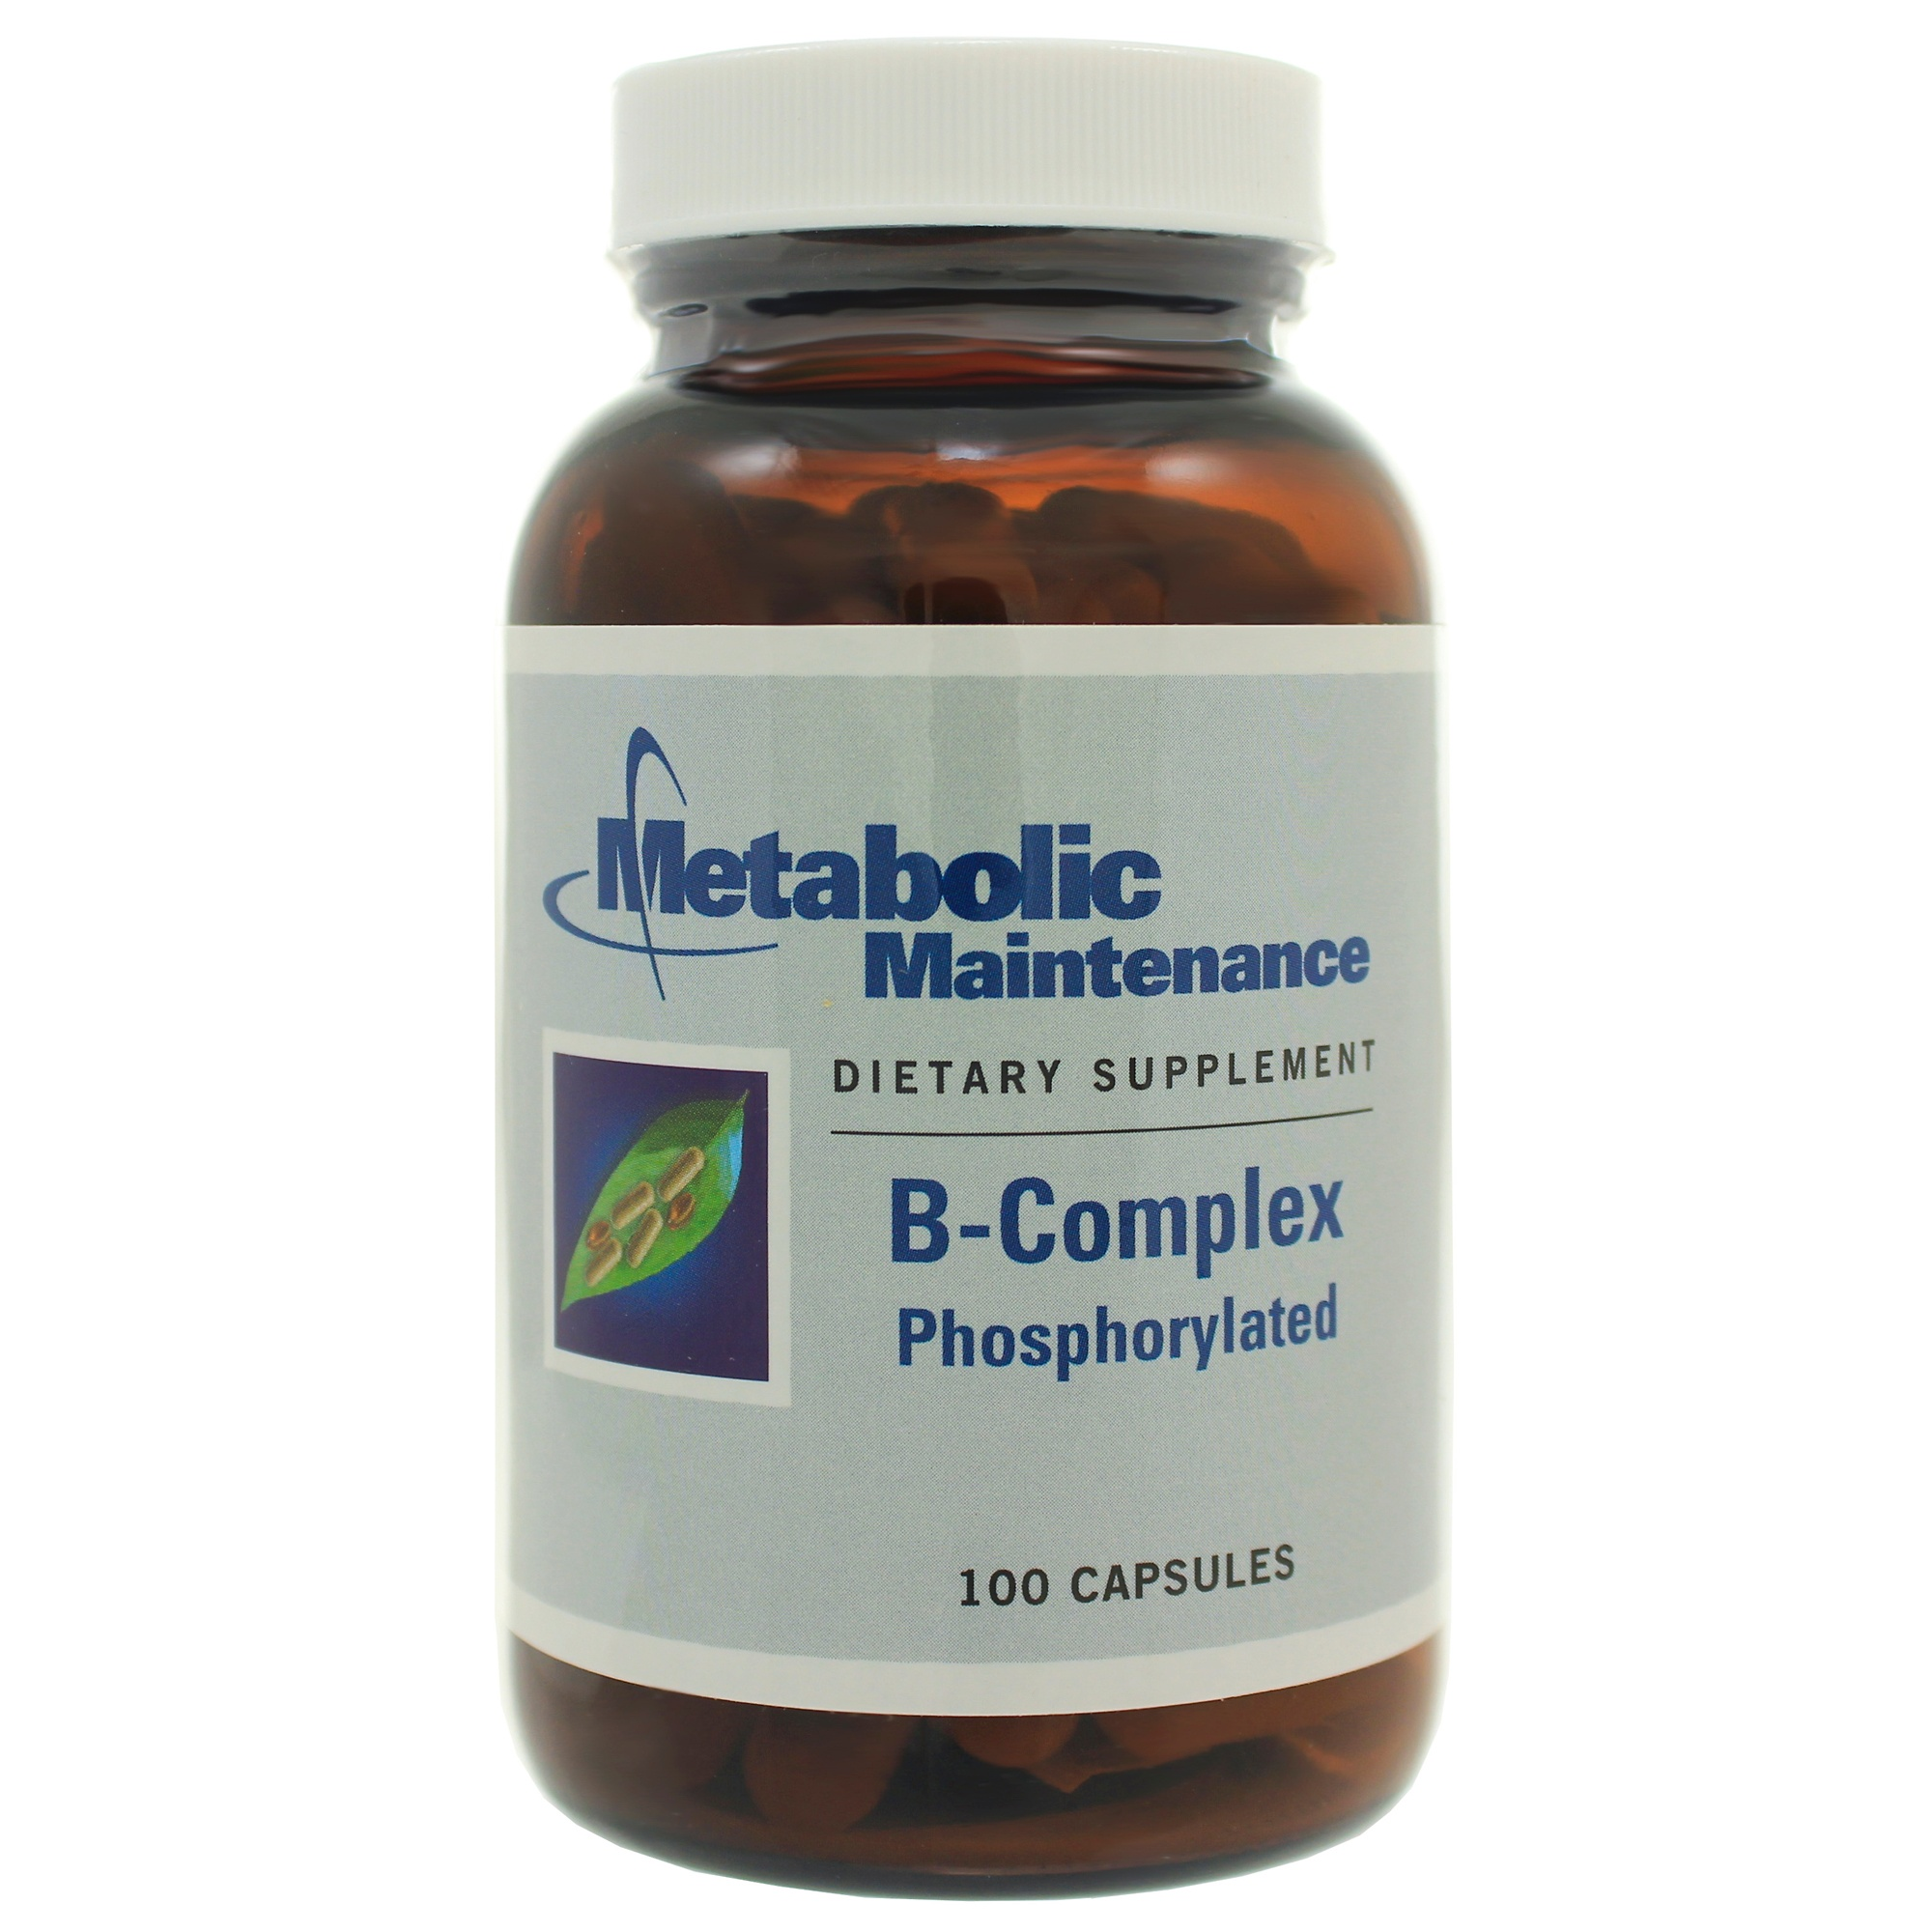 B Complex from Metabolic Maintenance replaces Ortho B Complex